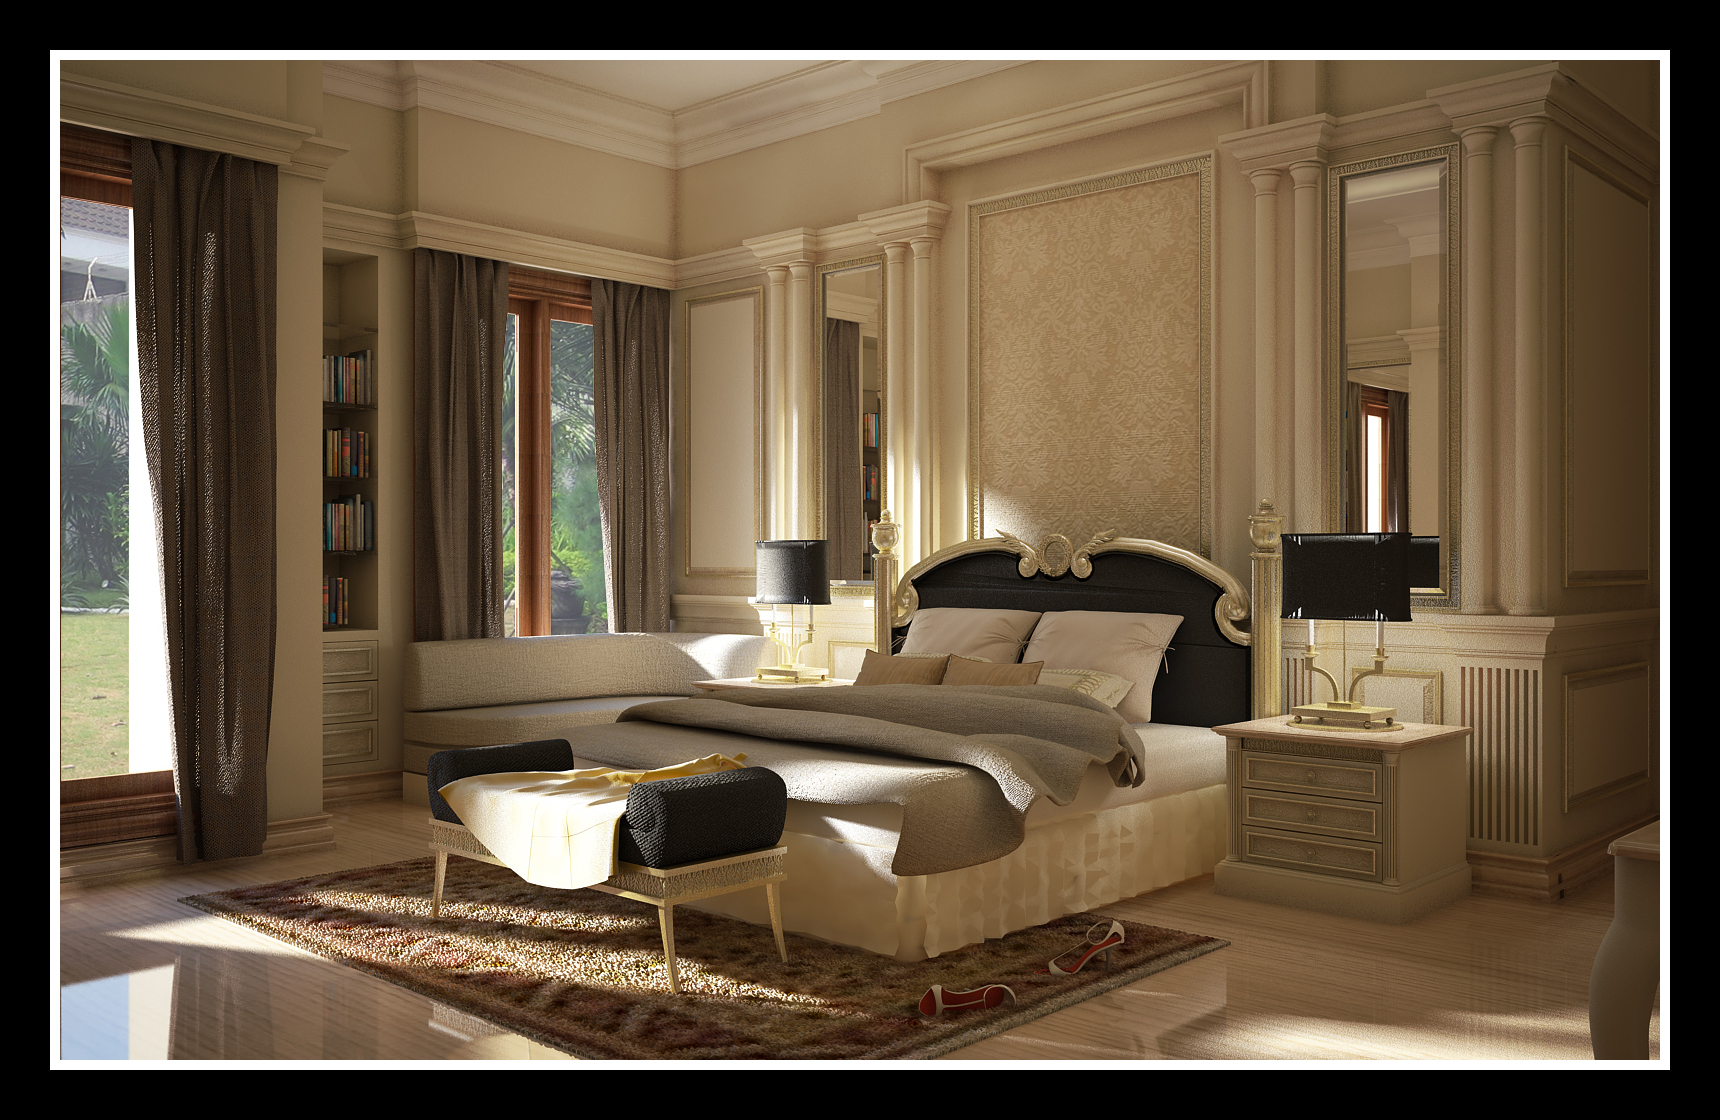 Perfect Classic Bedroom Design Ideas 1720 x 1120 · 1344 kB · jpeg